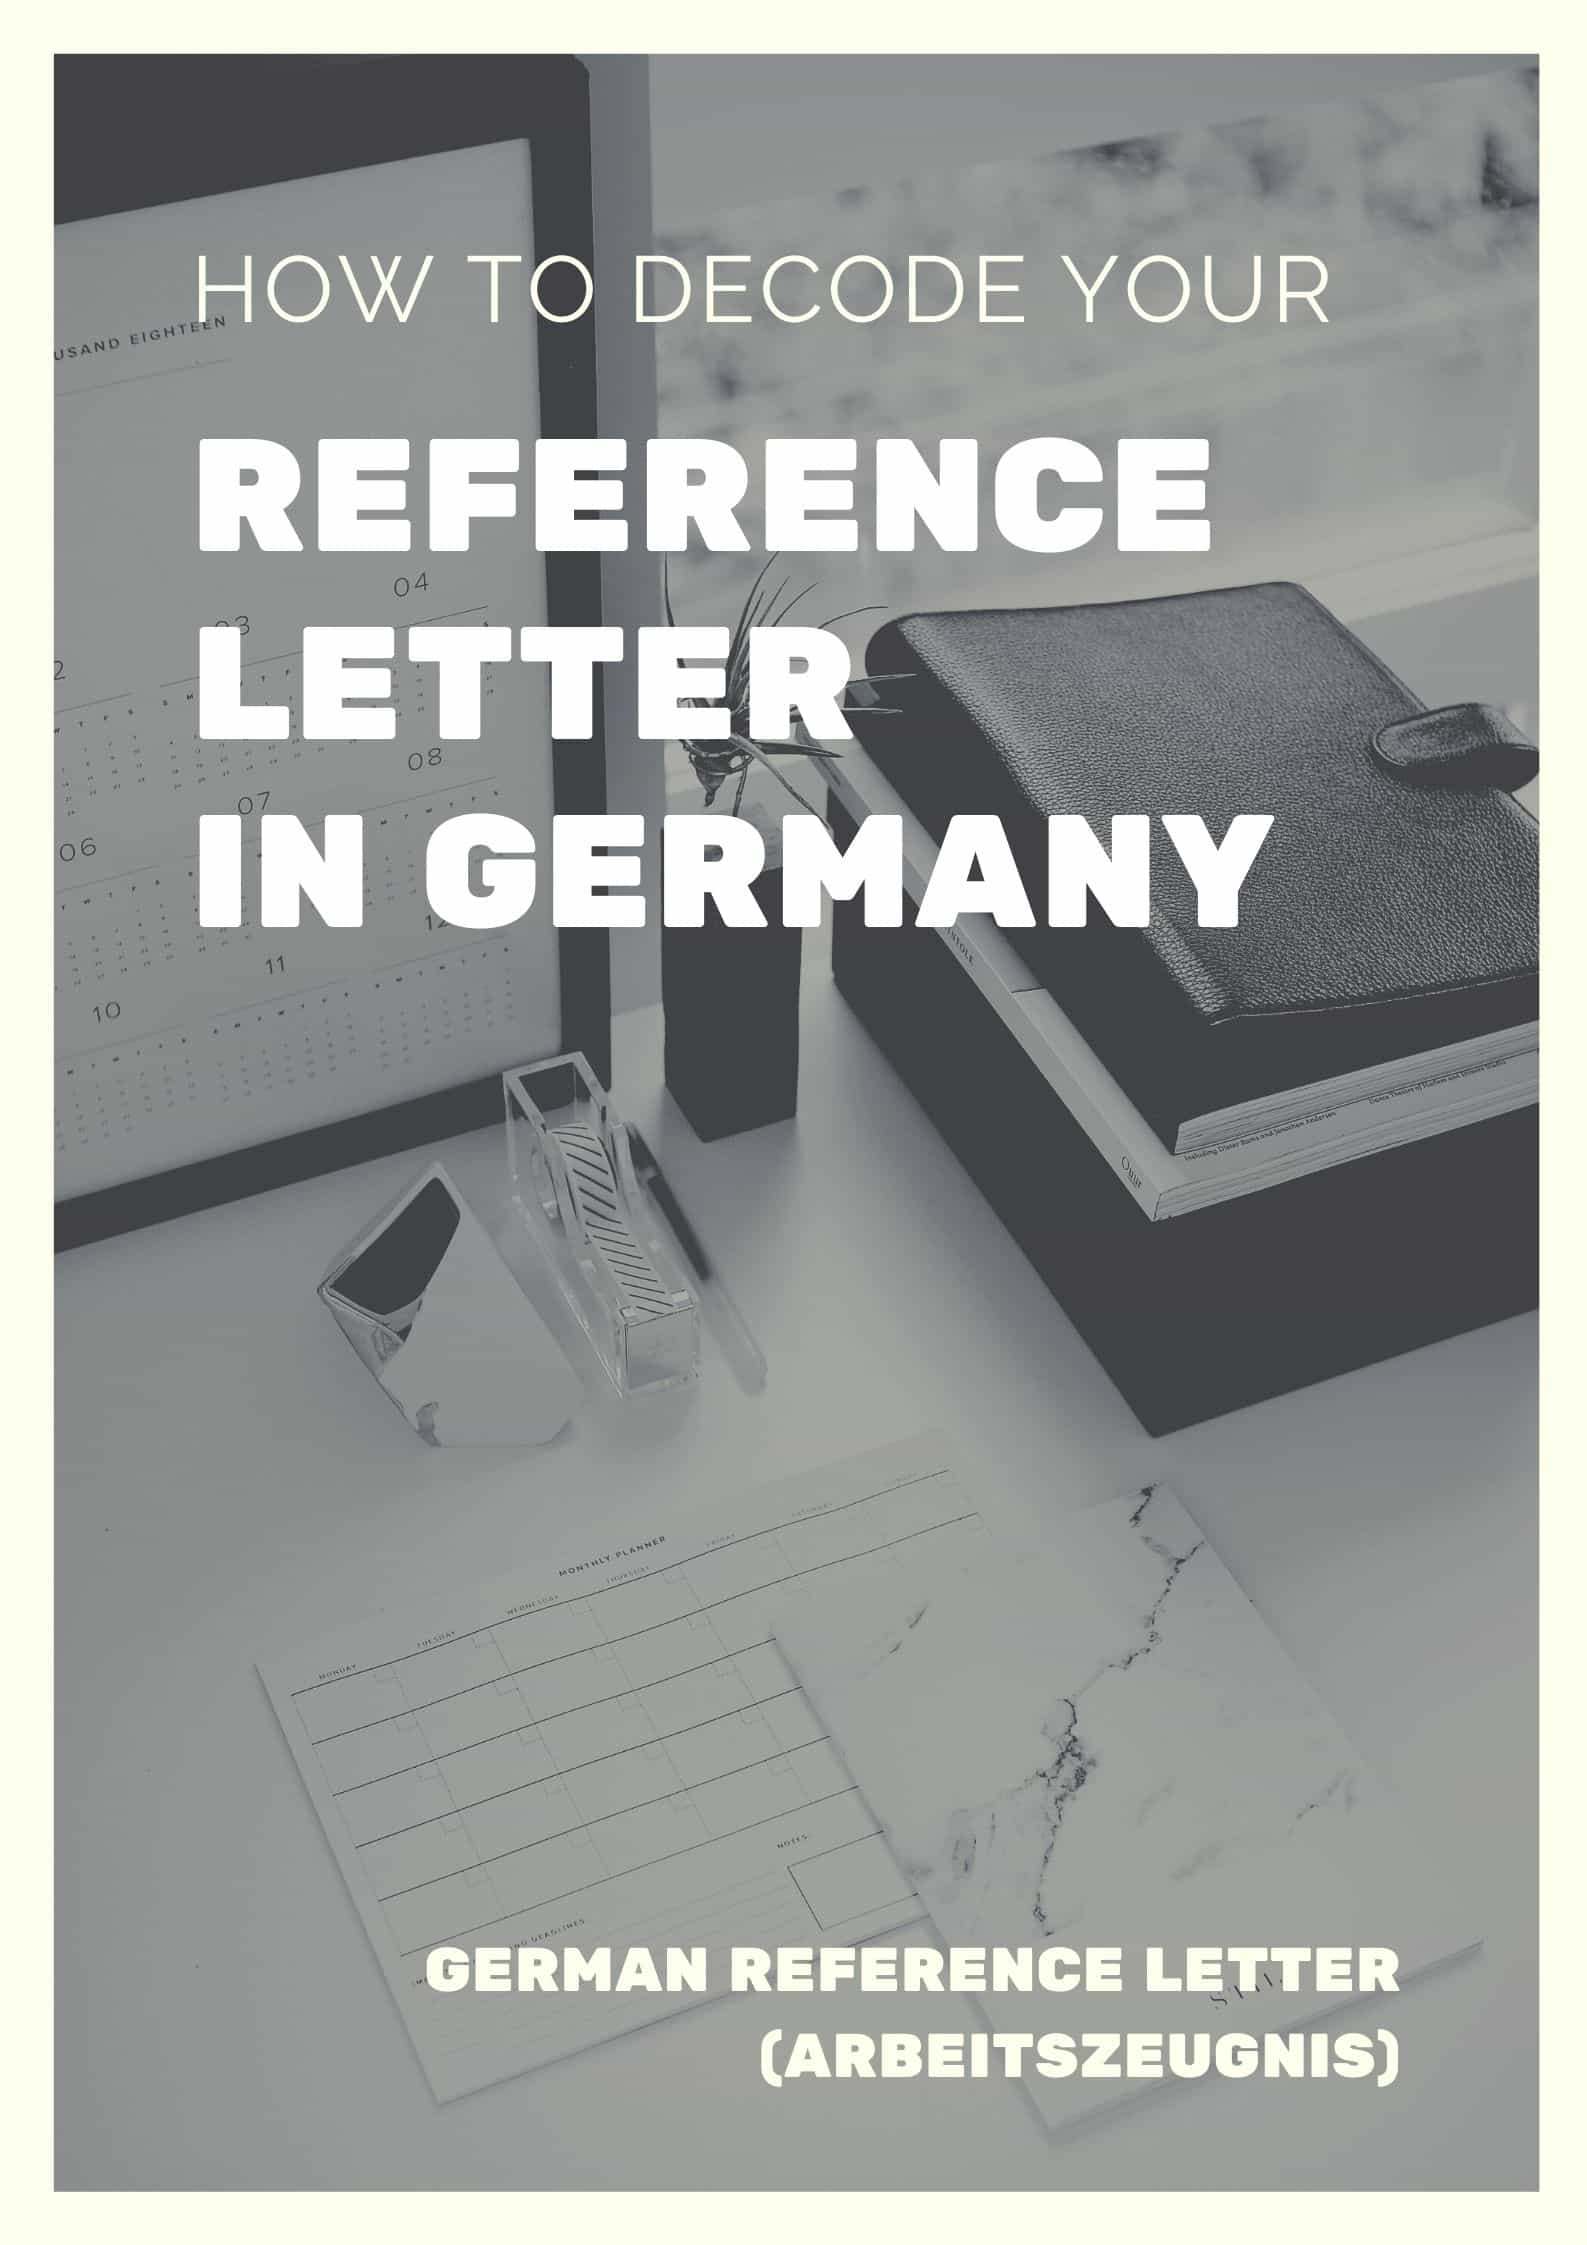 pinterest image business_reference letter Germany_decoding_My life in germany_hkwomanabroad_edited-min